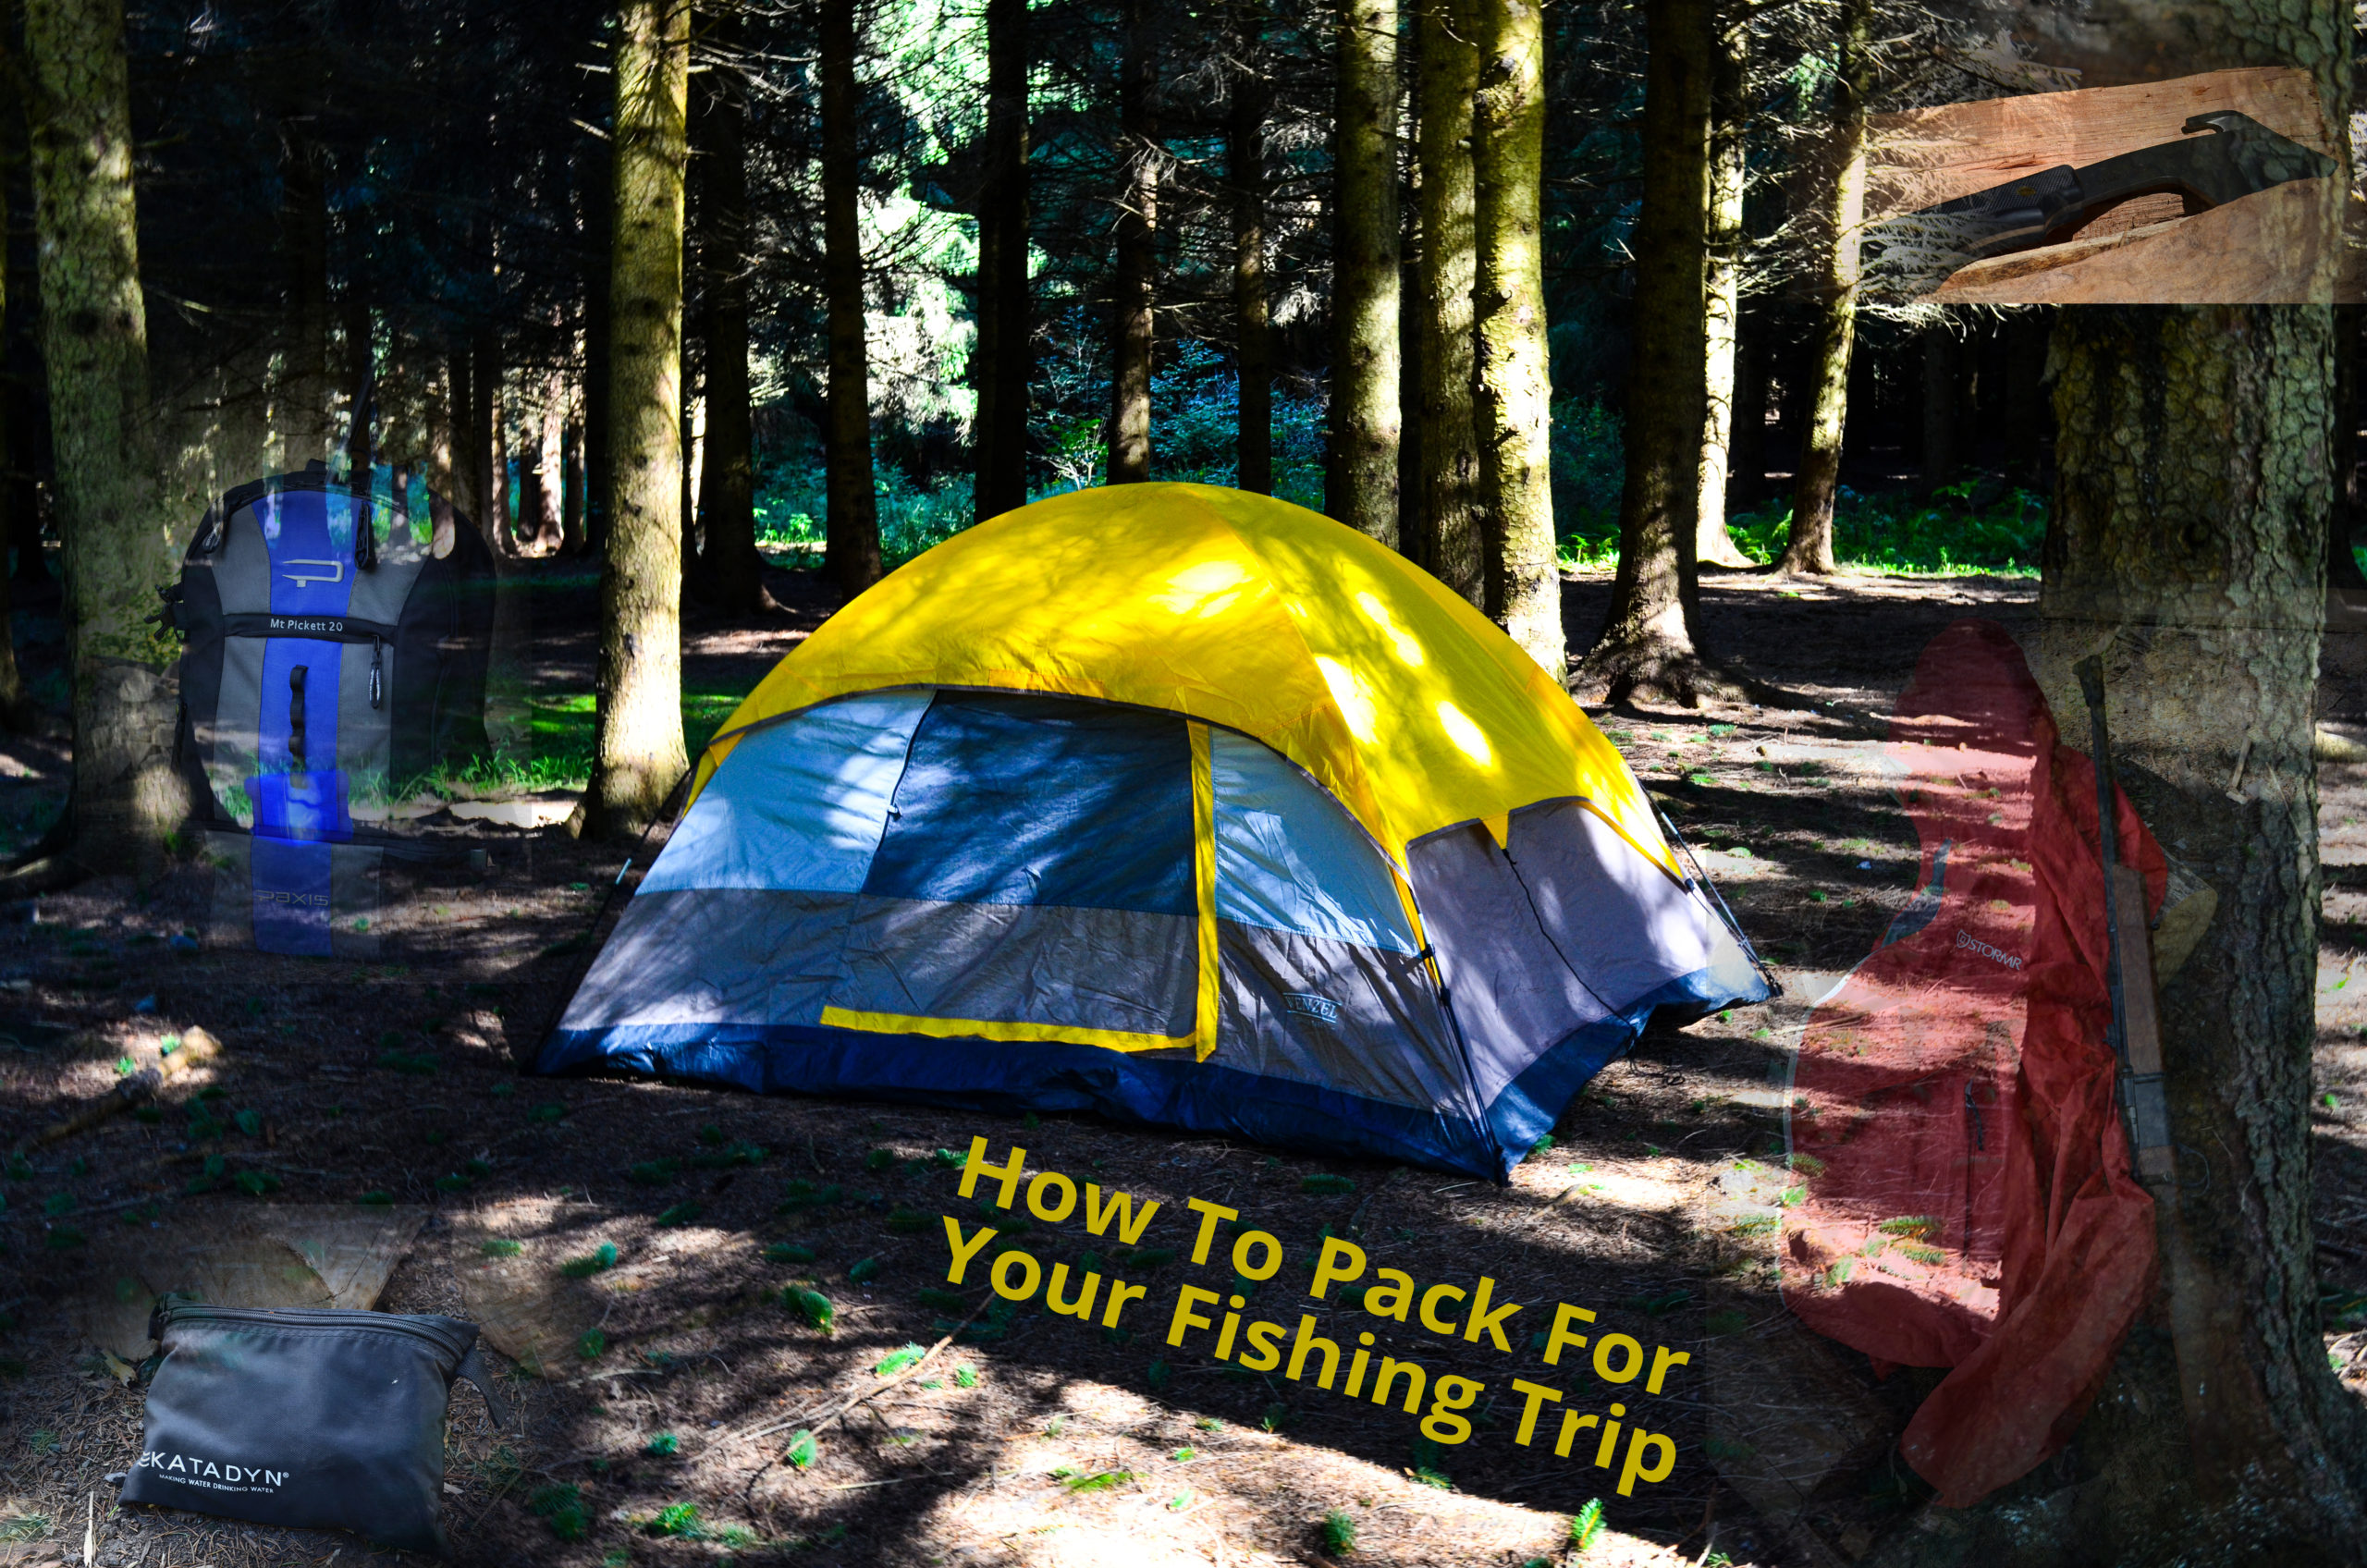 How To Pack For An Overnight Fishing Trip